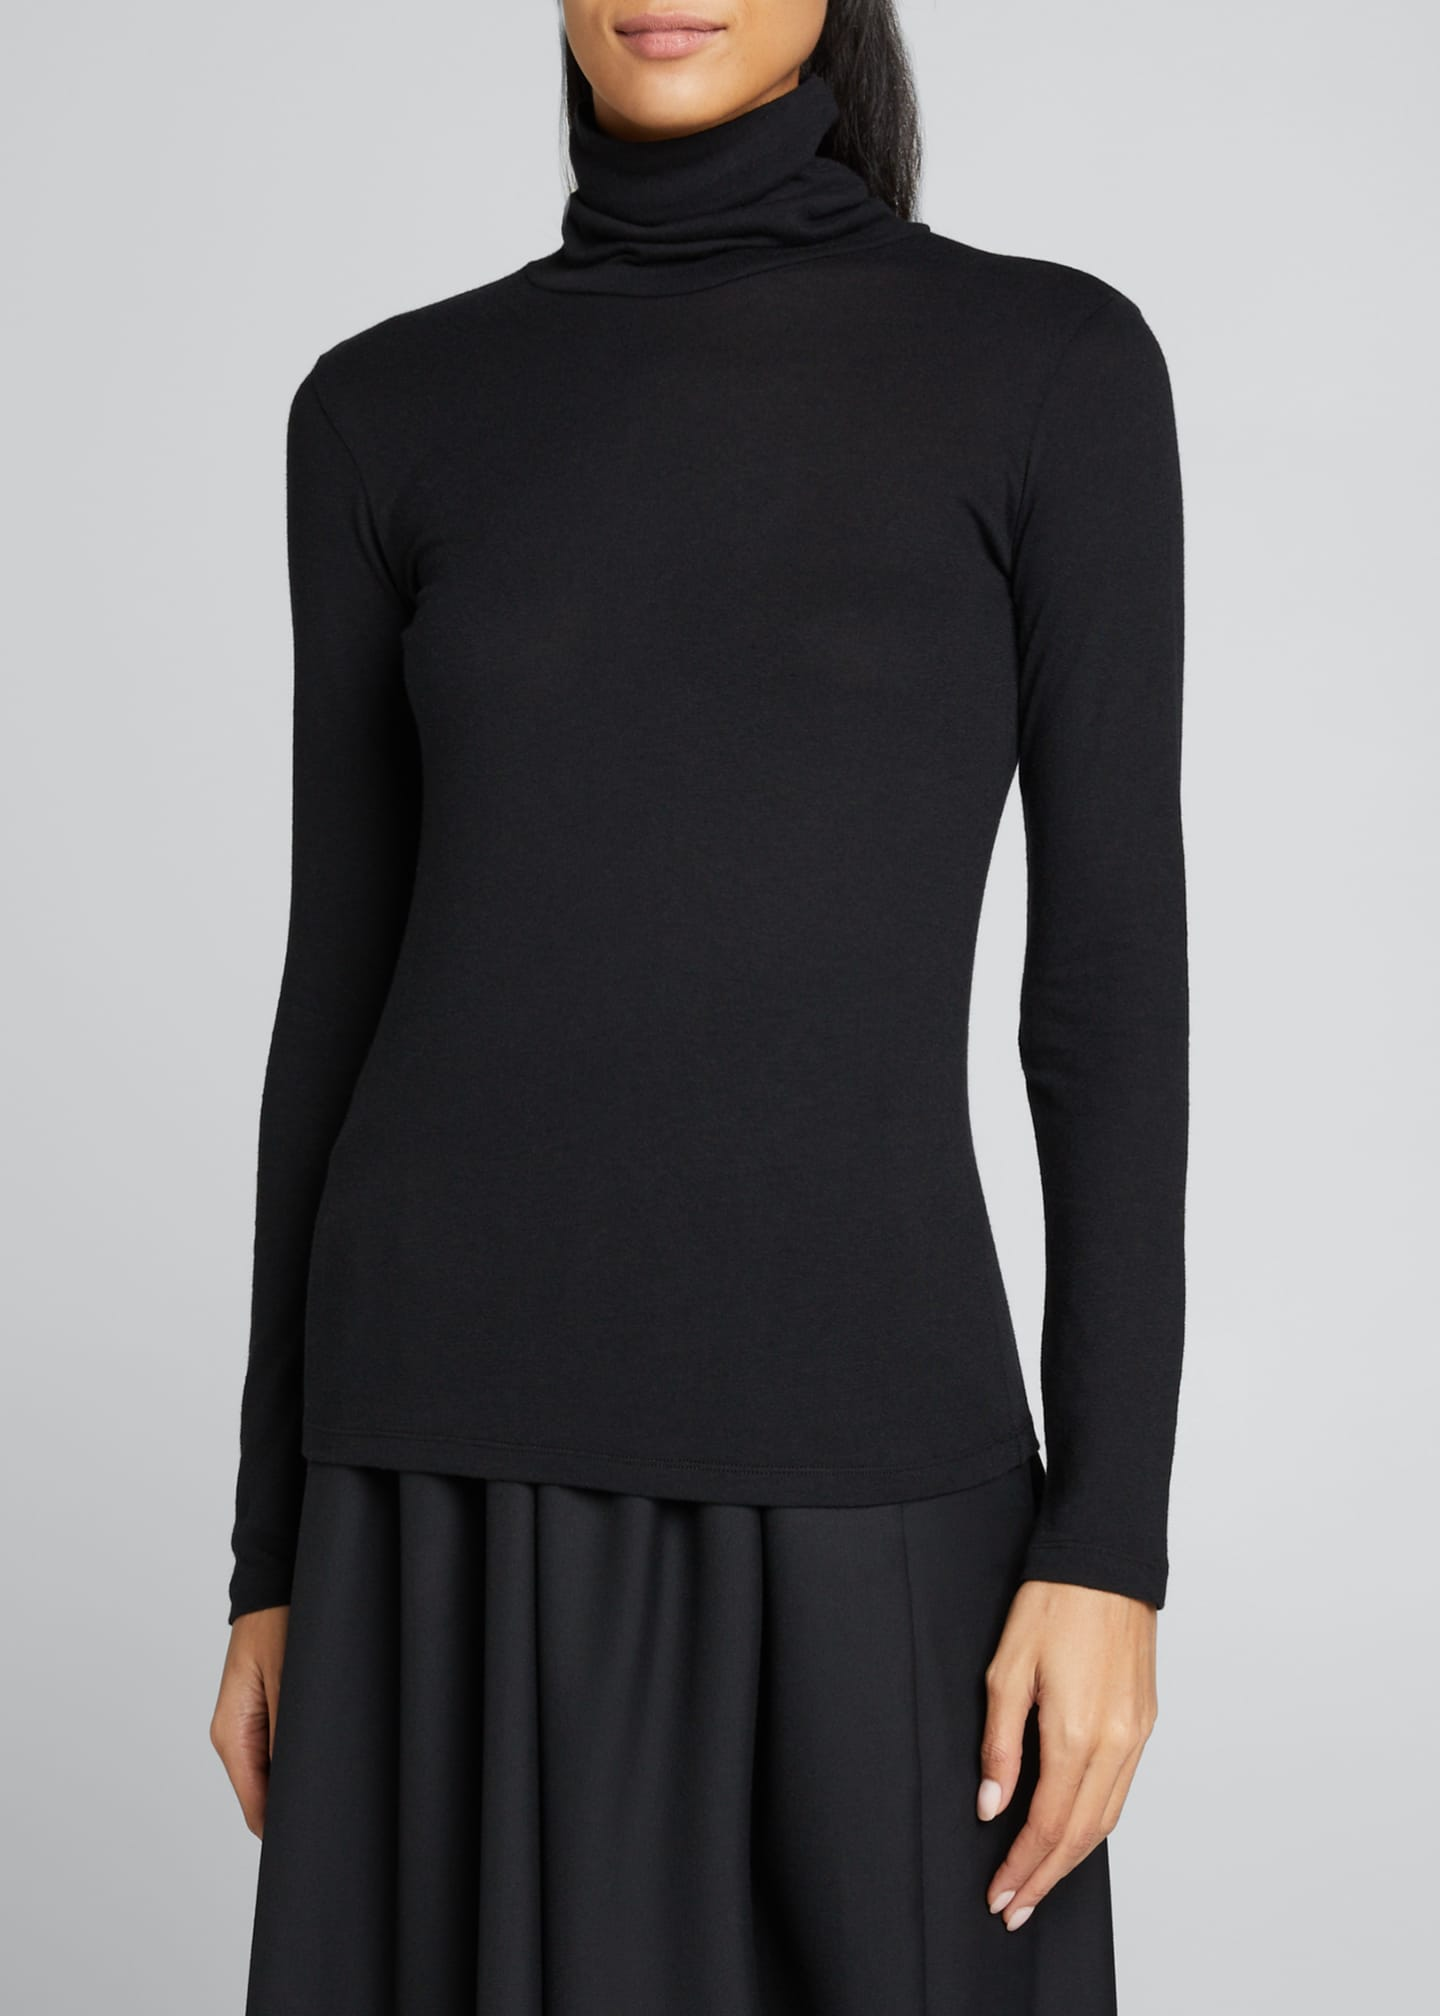 Image 3 of 5: Cotton-Cashmere Long Sleeve Turtleneck Top